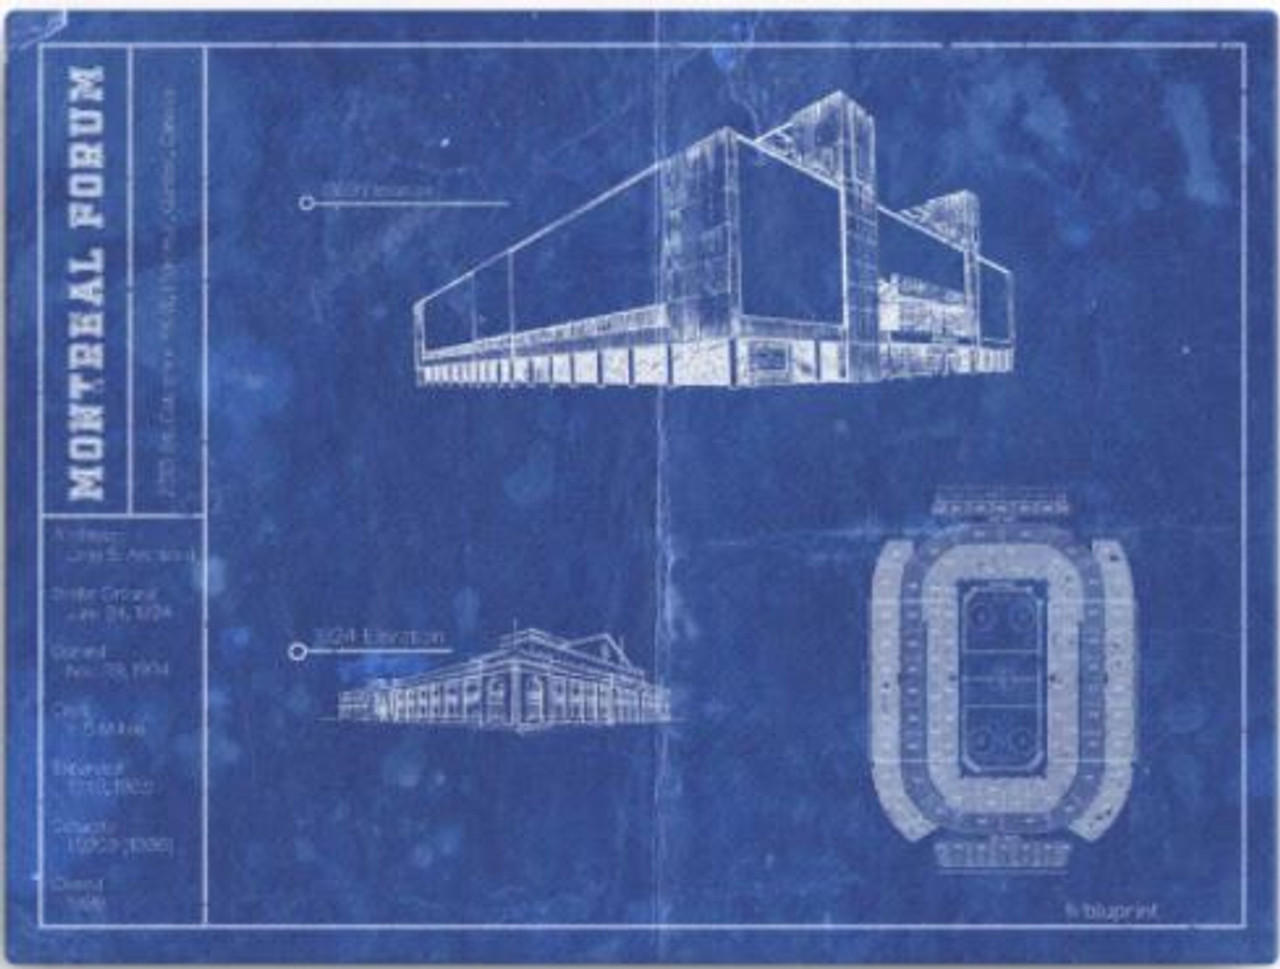 Montreal Forum - Montreal Canadians Blueprint Poster